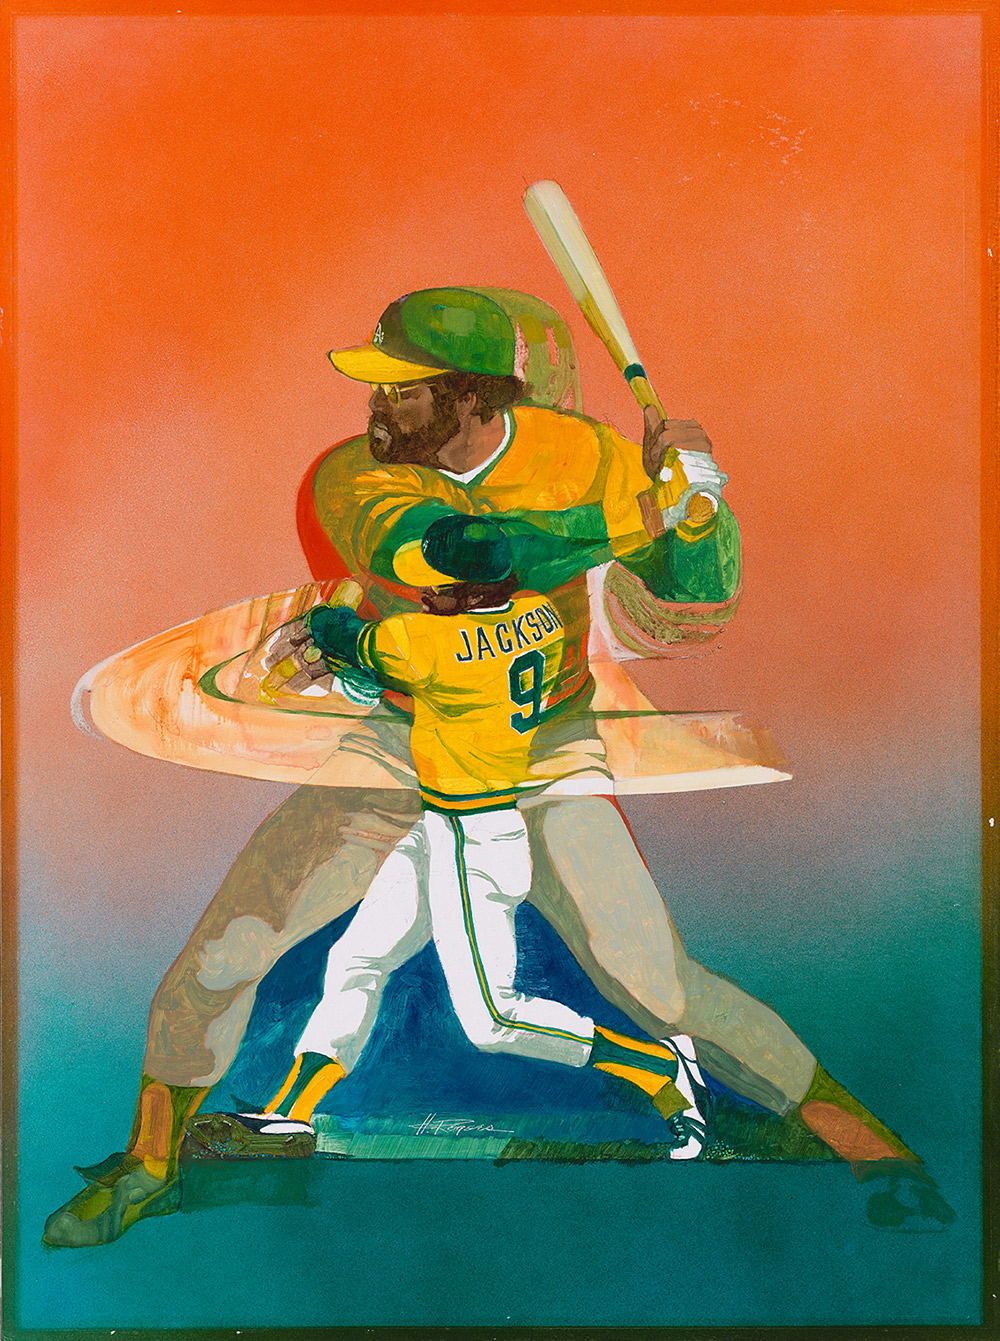 image of a baseball player swinging a bat